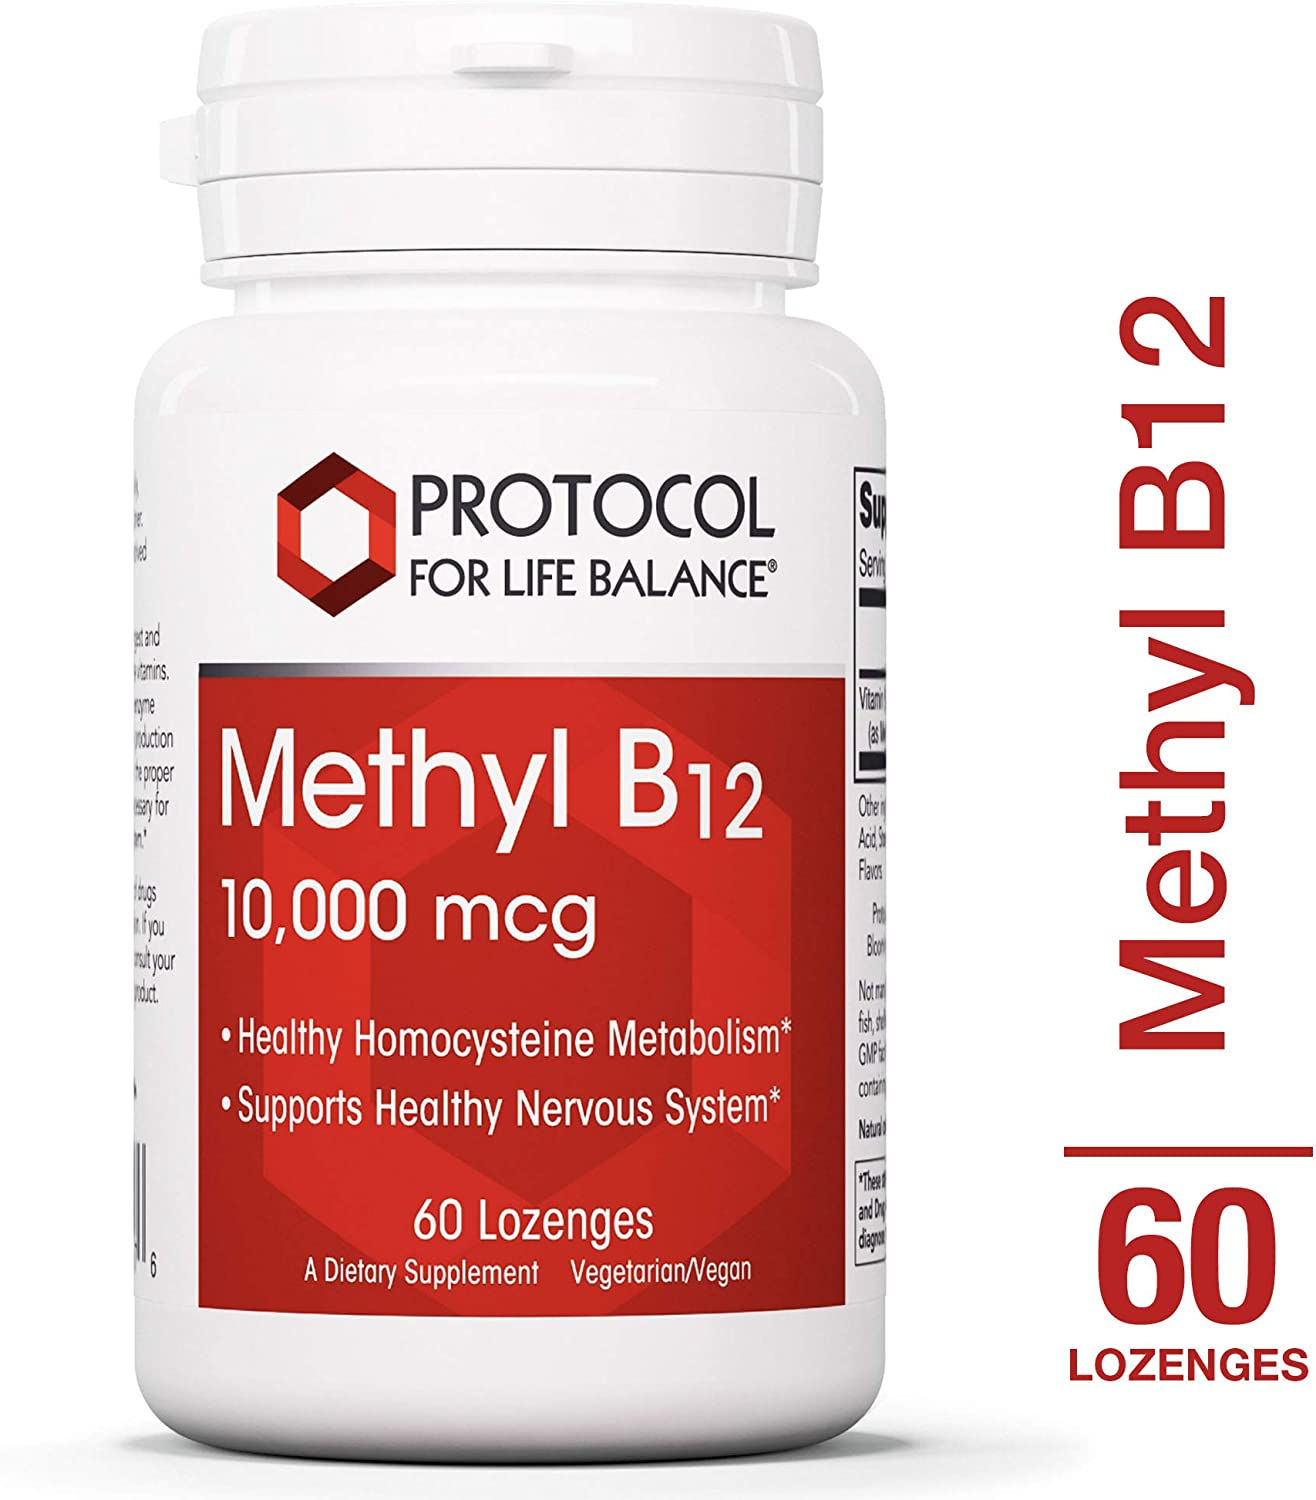 Protocol For Life Balance – Methyl B12 10,000 mcg – Supports Homocysteine Metabolism and Healthy Nervous System, Energy Boost, Cognitive Function, Digestive System – 60 Lozenges